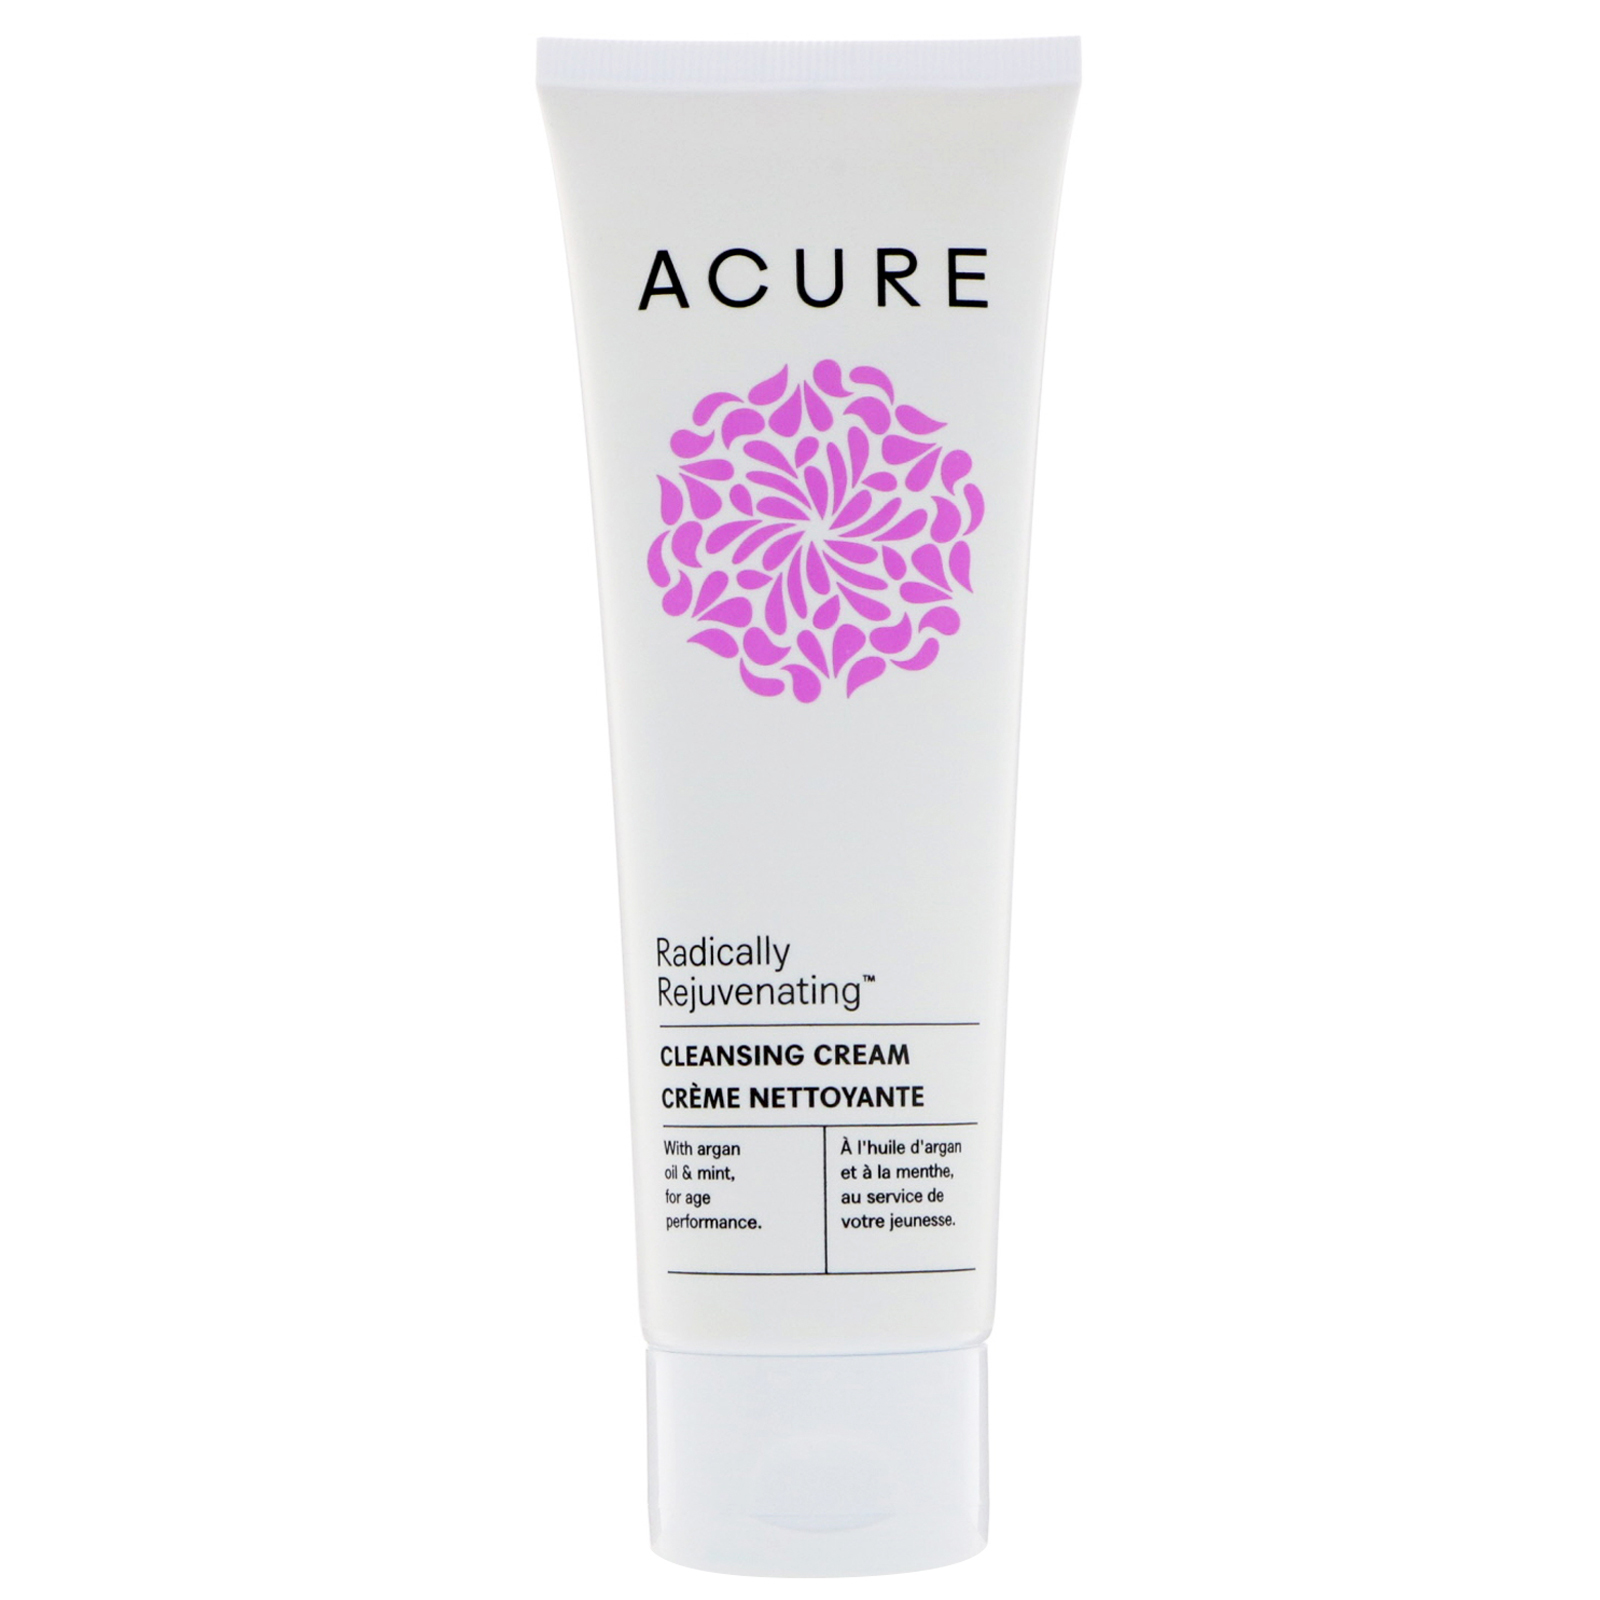 Acure, Radically Rejuvenating, Cleansing Cream, 4 Fl Oz